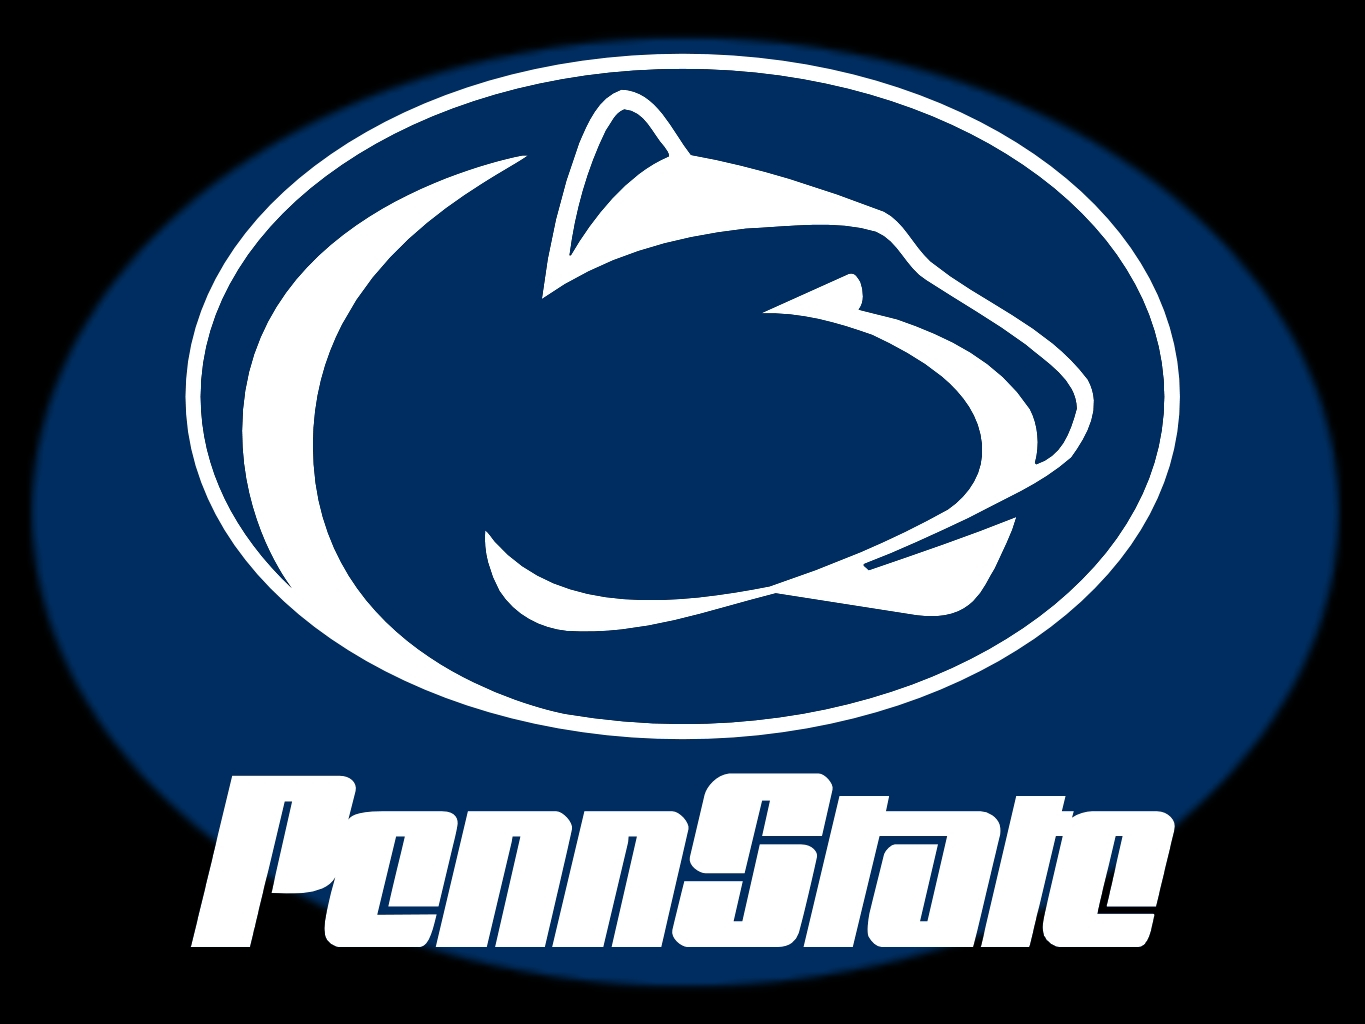 am an assistant professor of astronomy at Penn State 1365x1024